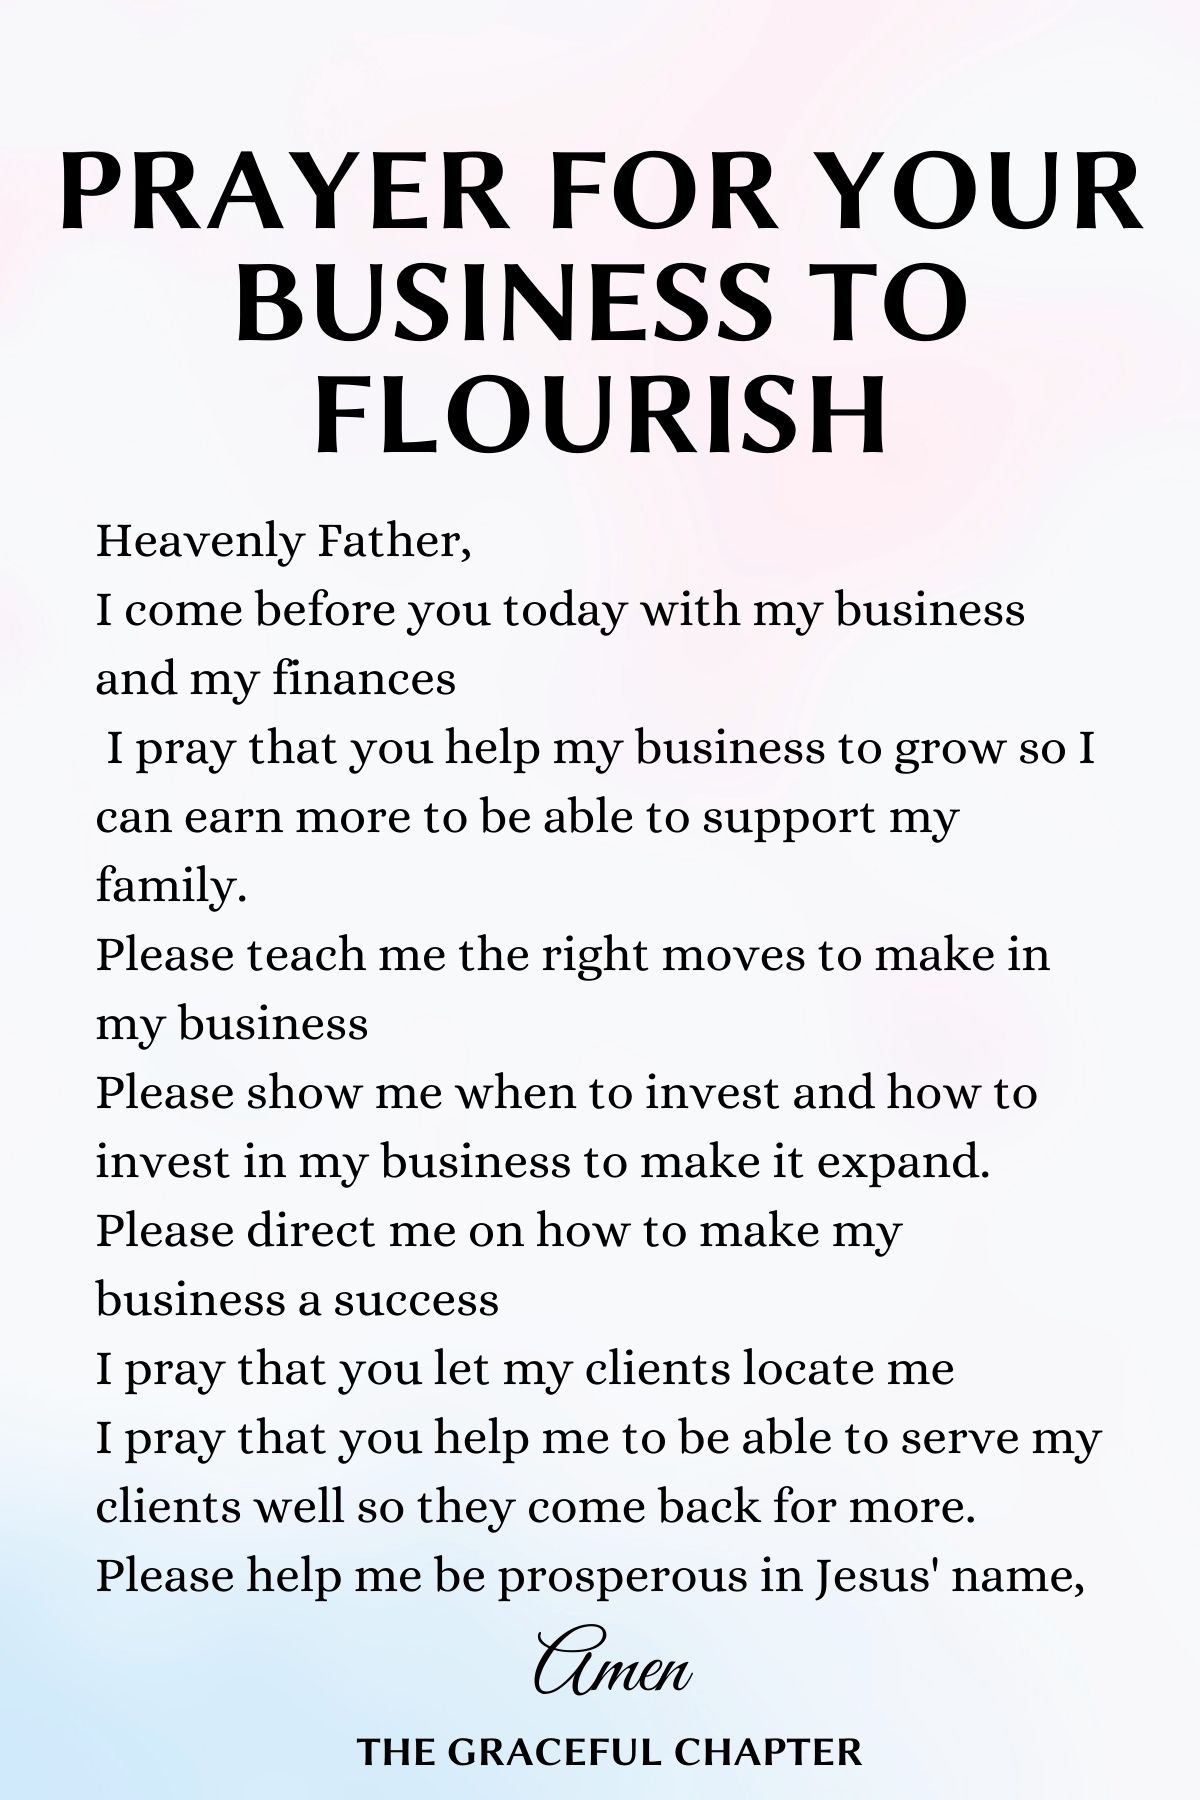 Prayer for your business to flourish